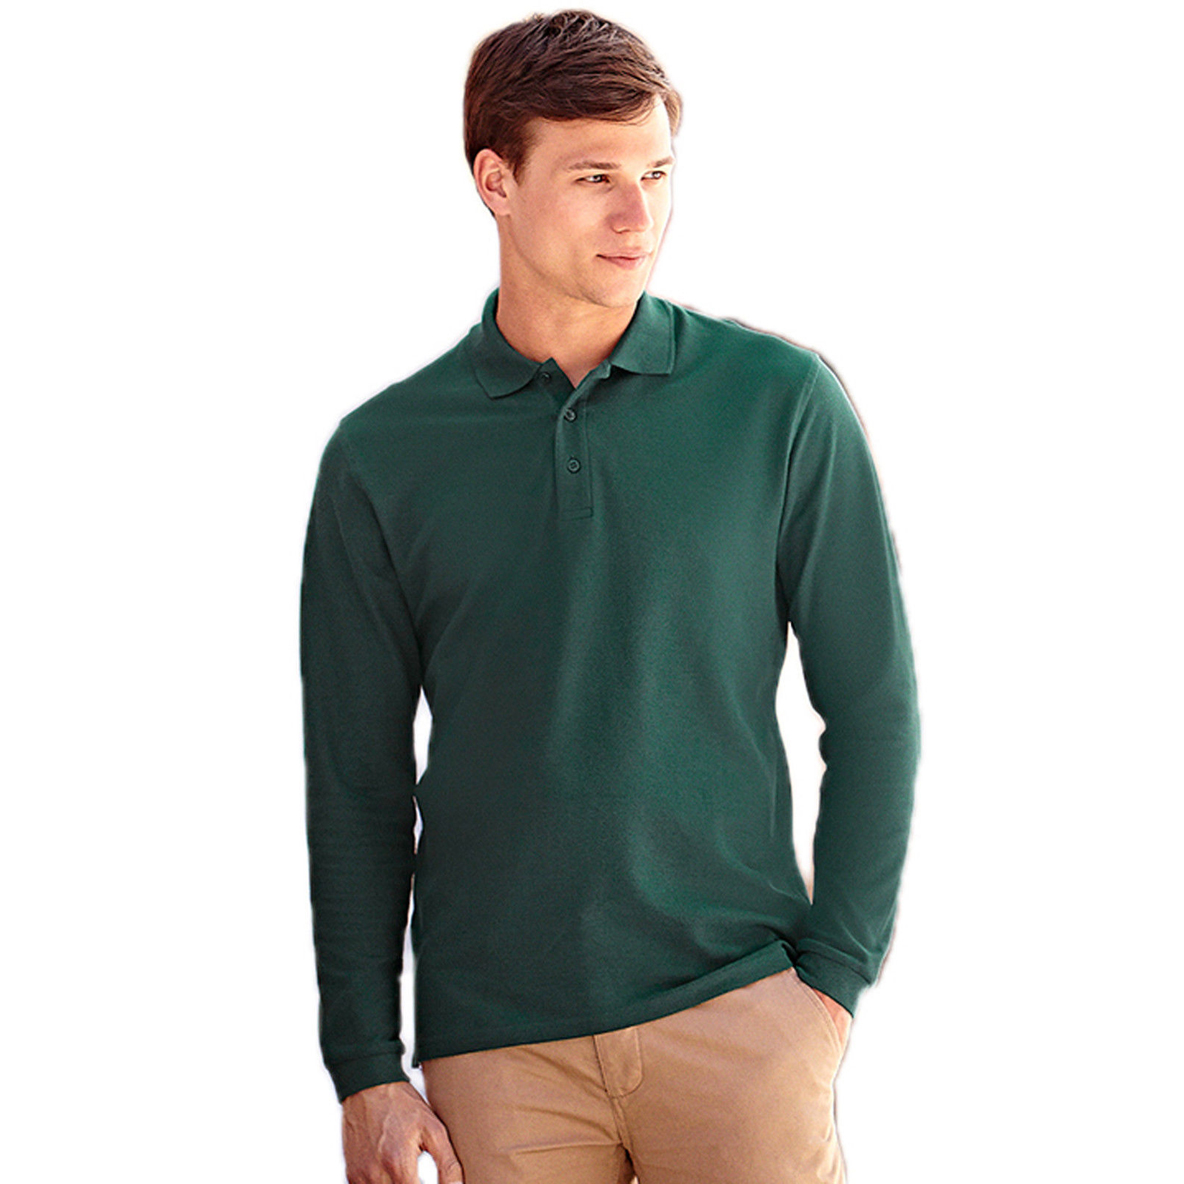 Polo Premium Fruit of the Loom maniche lunghe